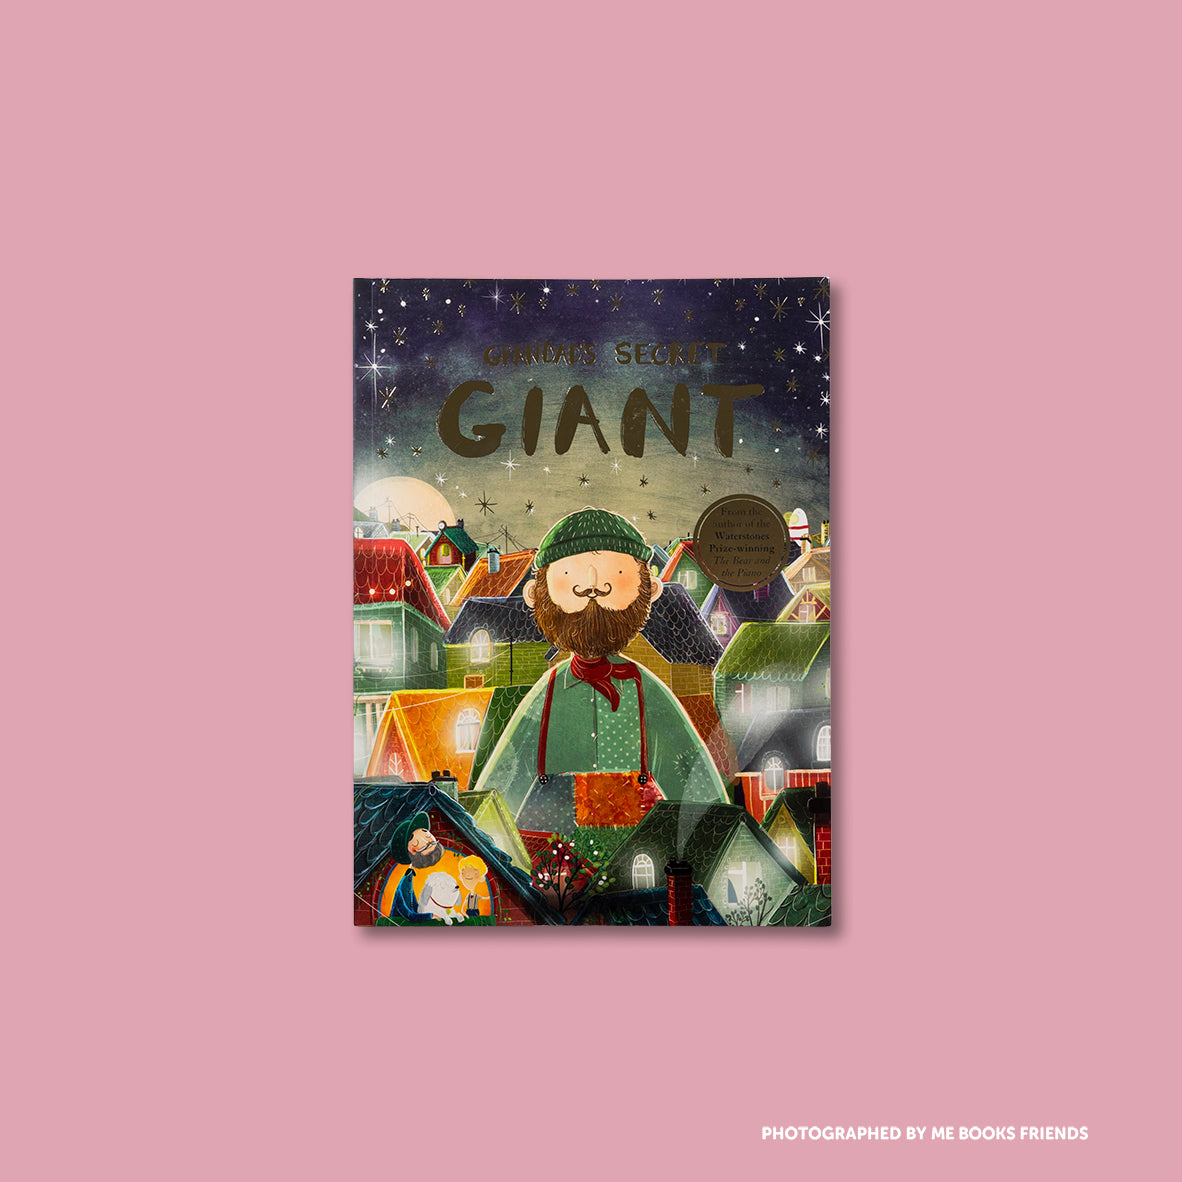 Grandad's Secret Giant - Me Books Asia Store